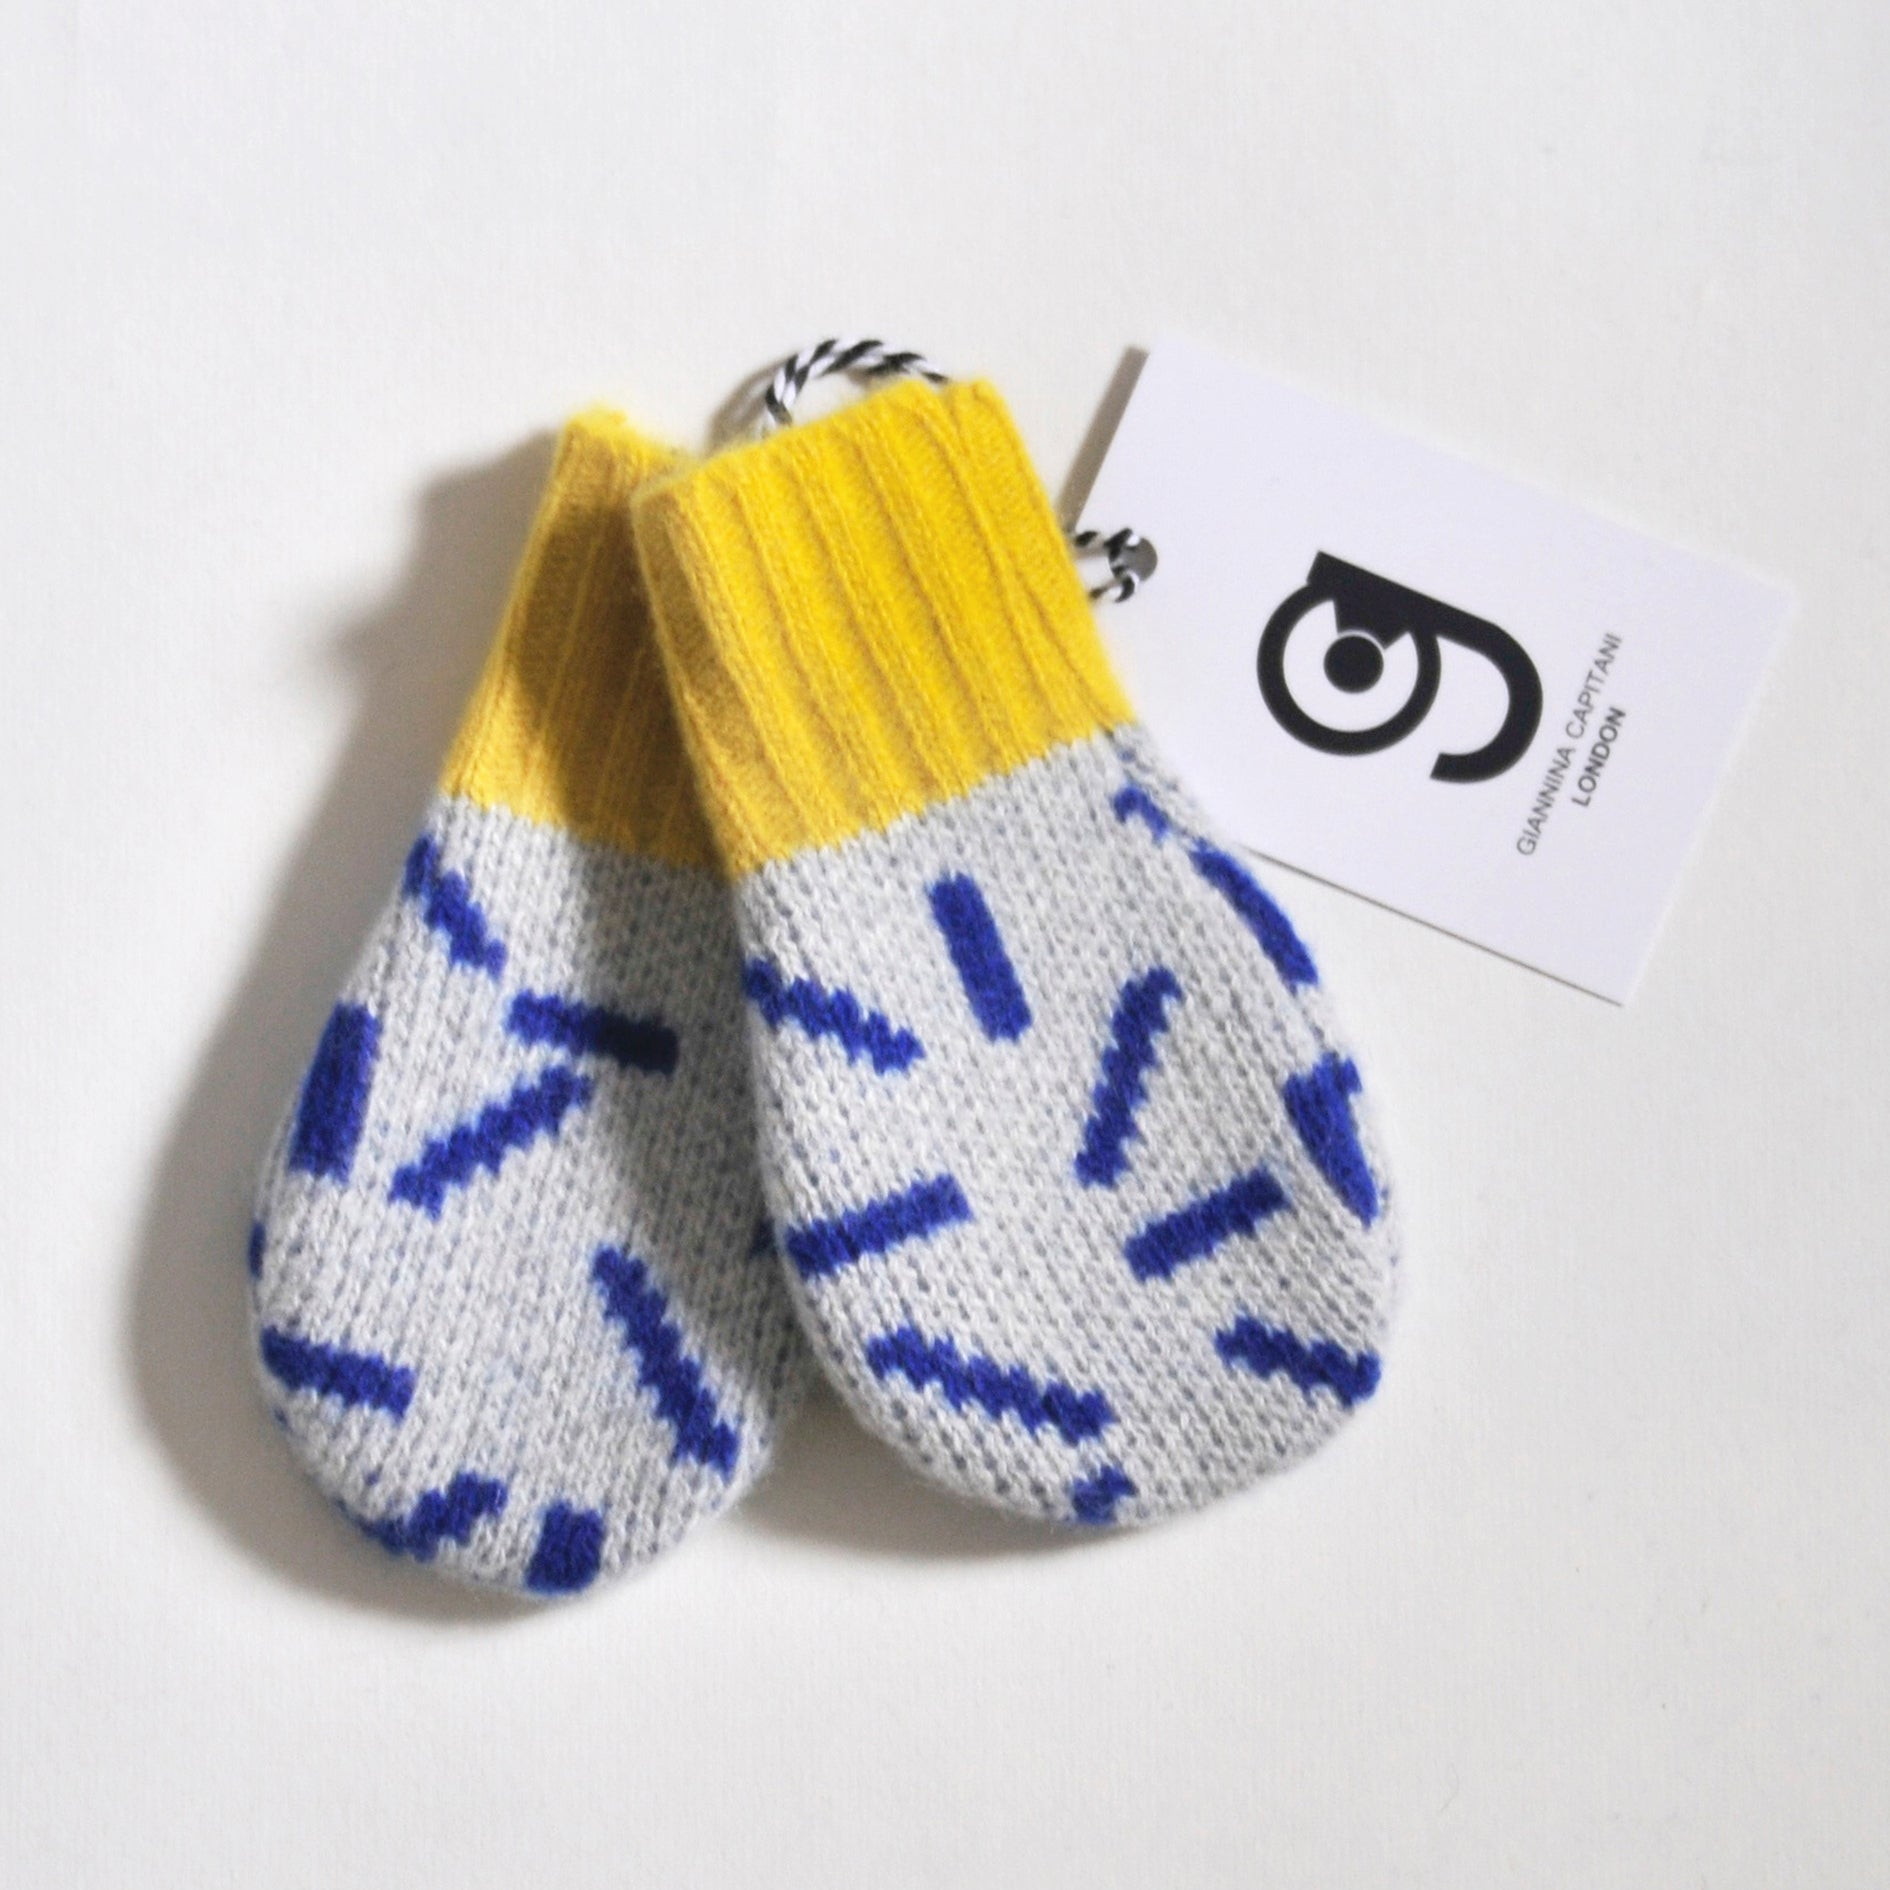 DASH BABY MITTEN IN GREY AND BLUE